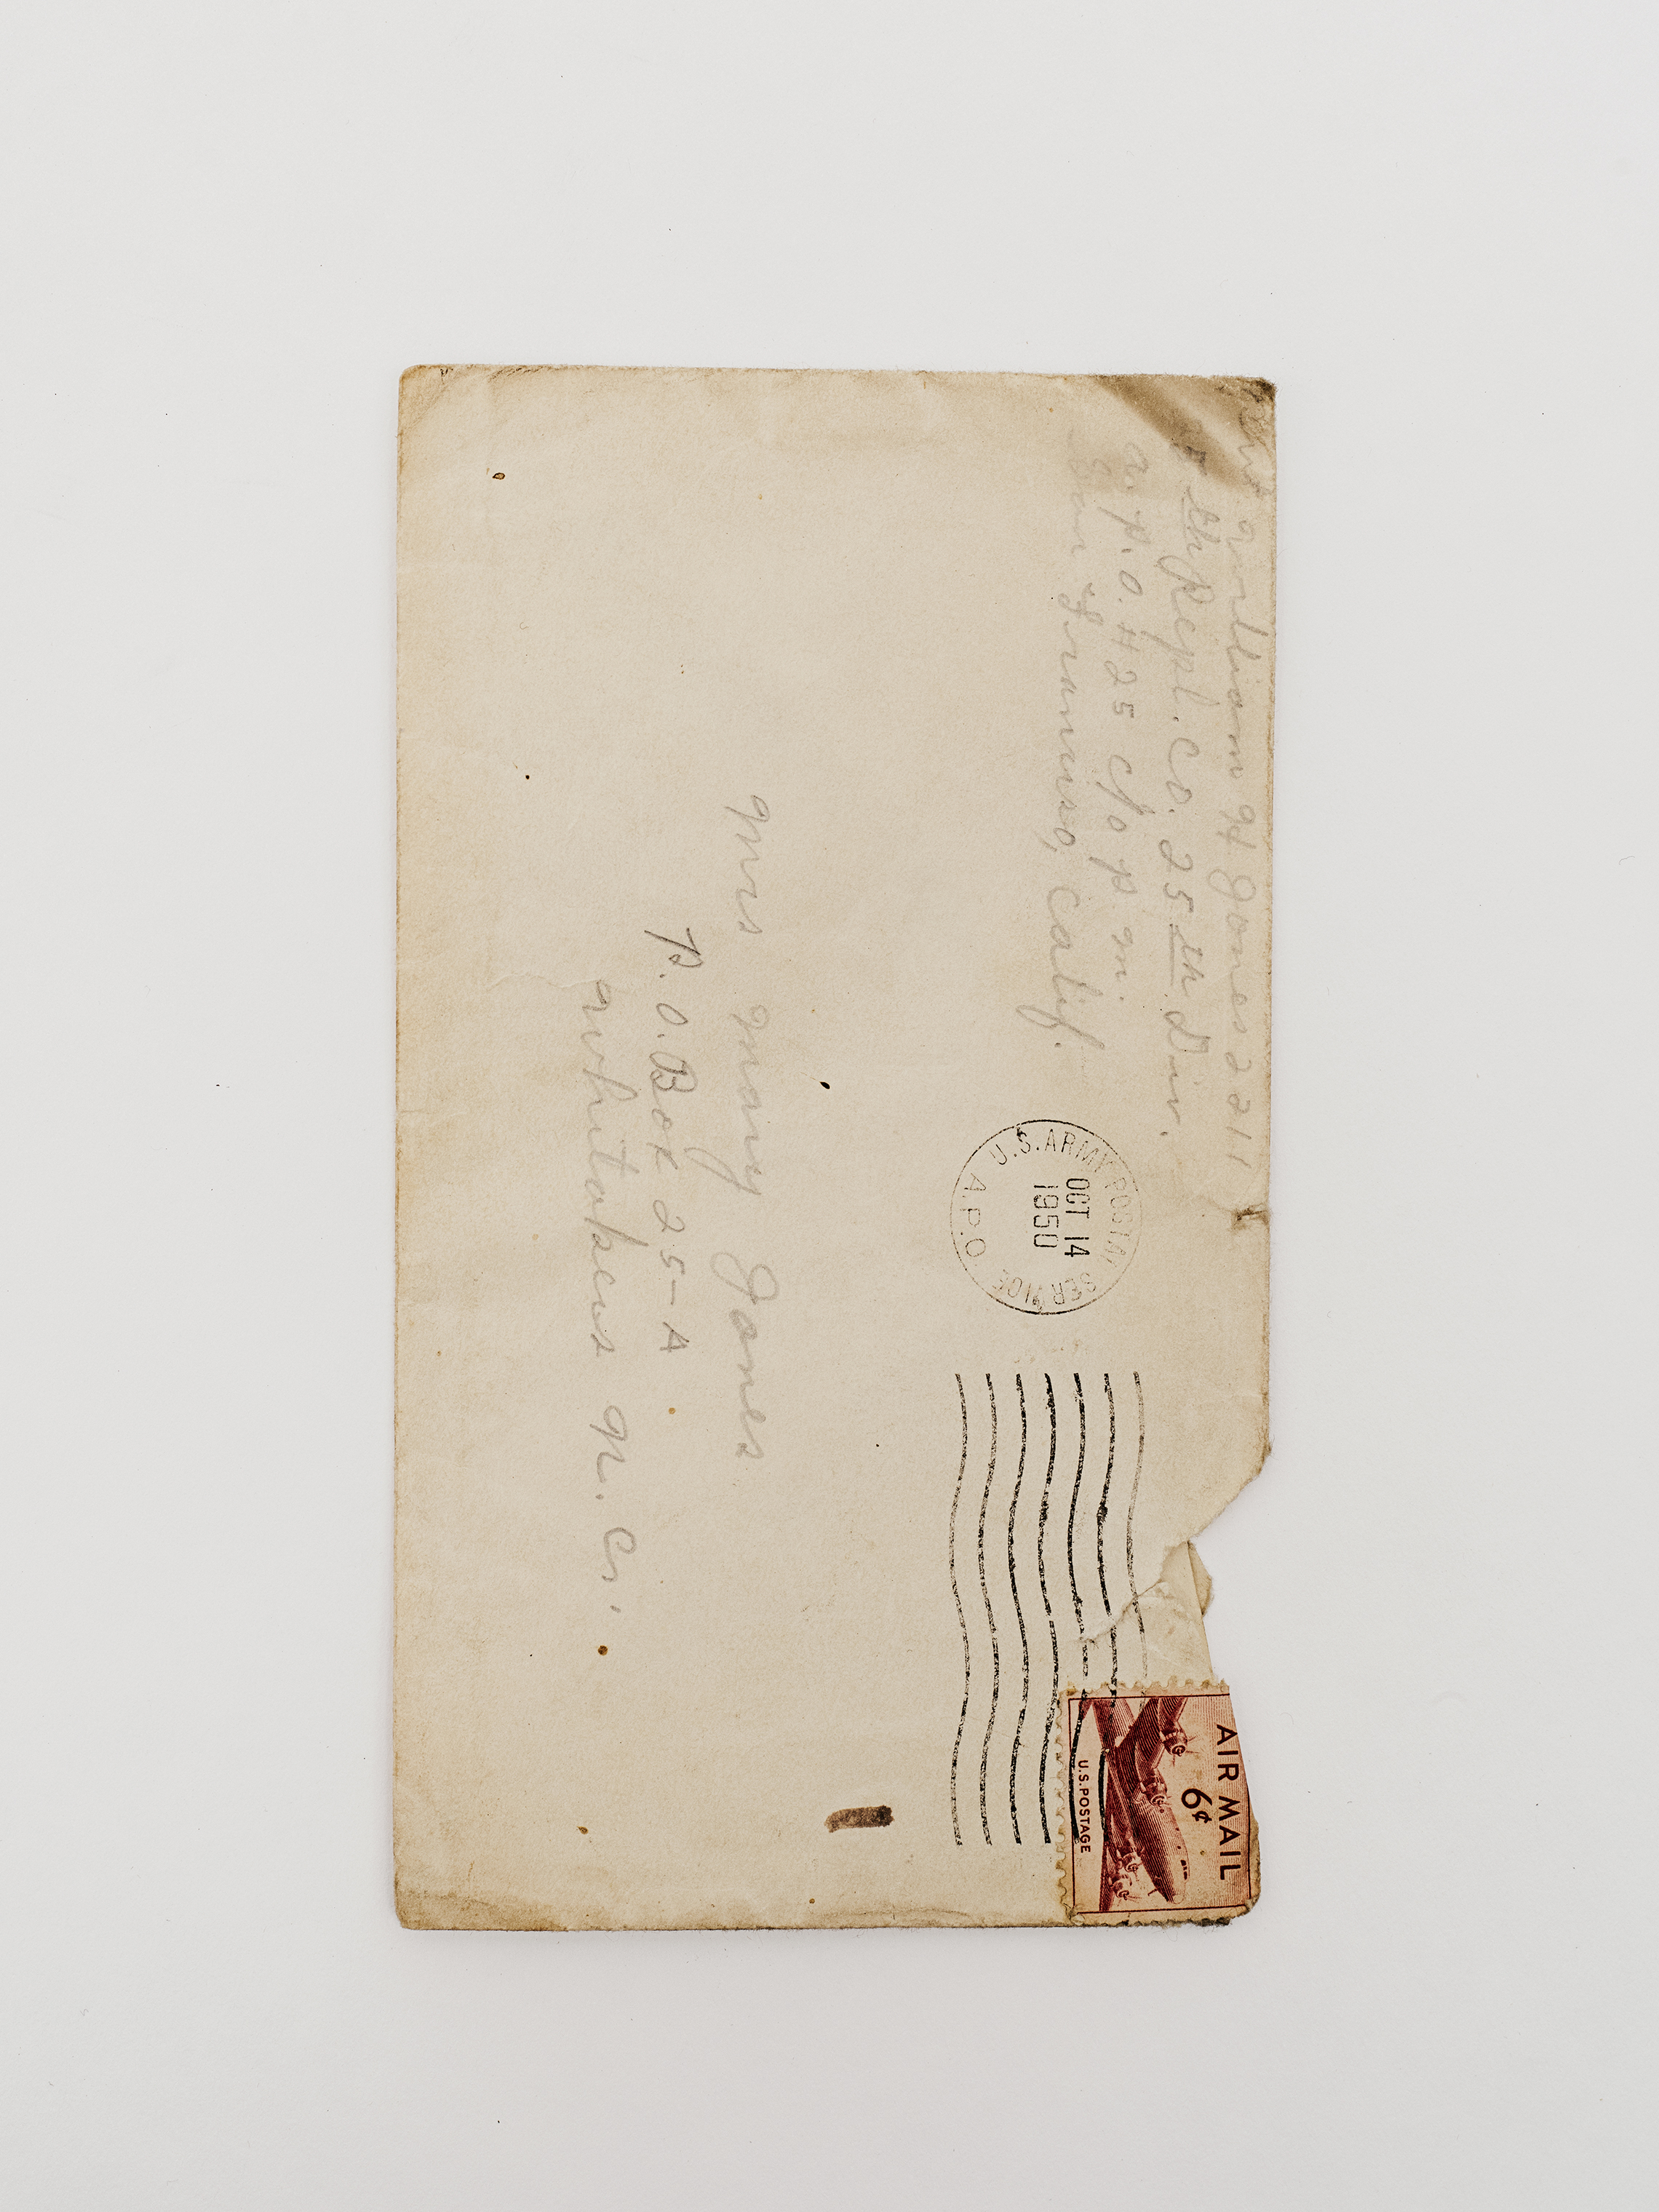 The envelope of a letter sent by Hoover to his mother, post-dated Oct. 14, 1950.